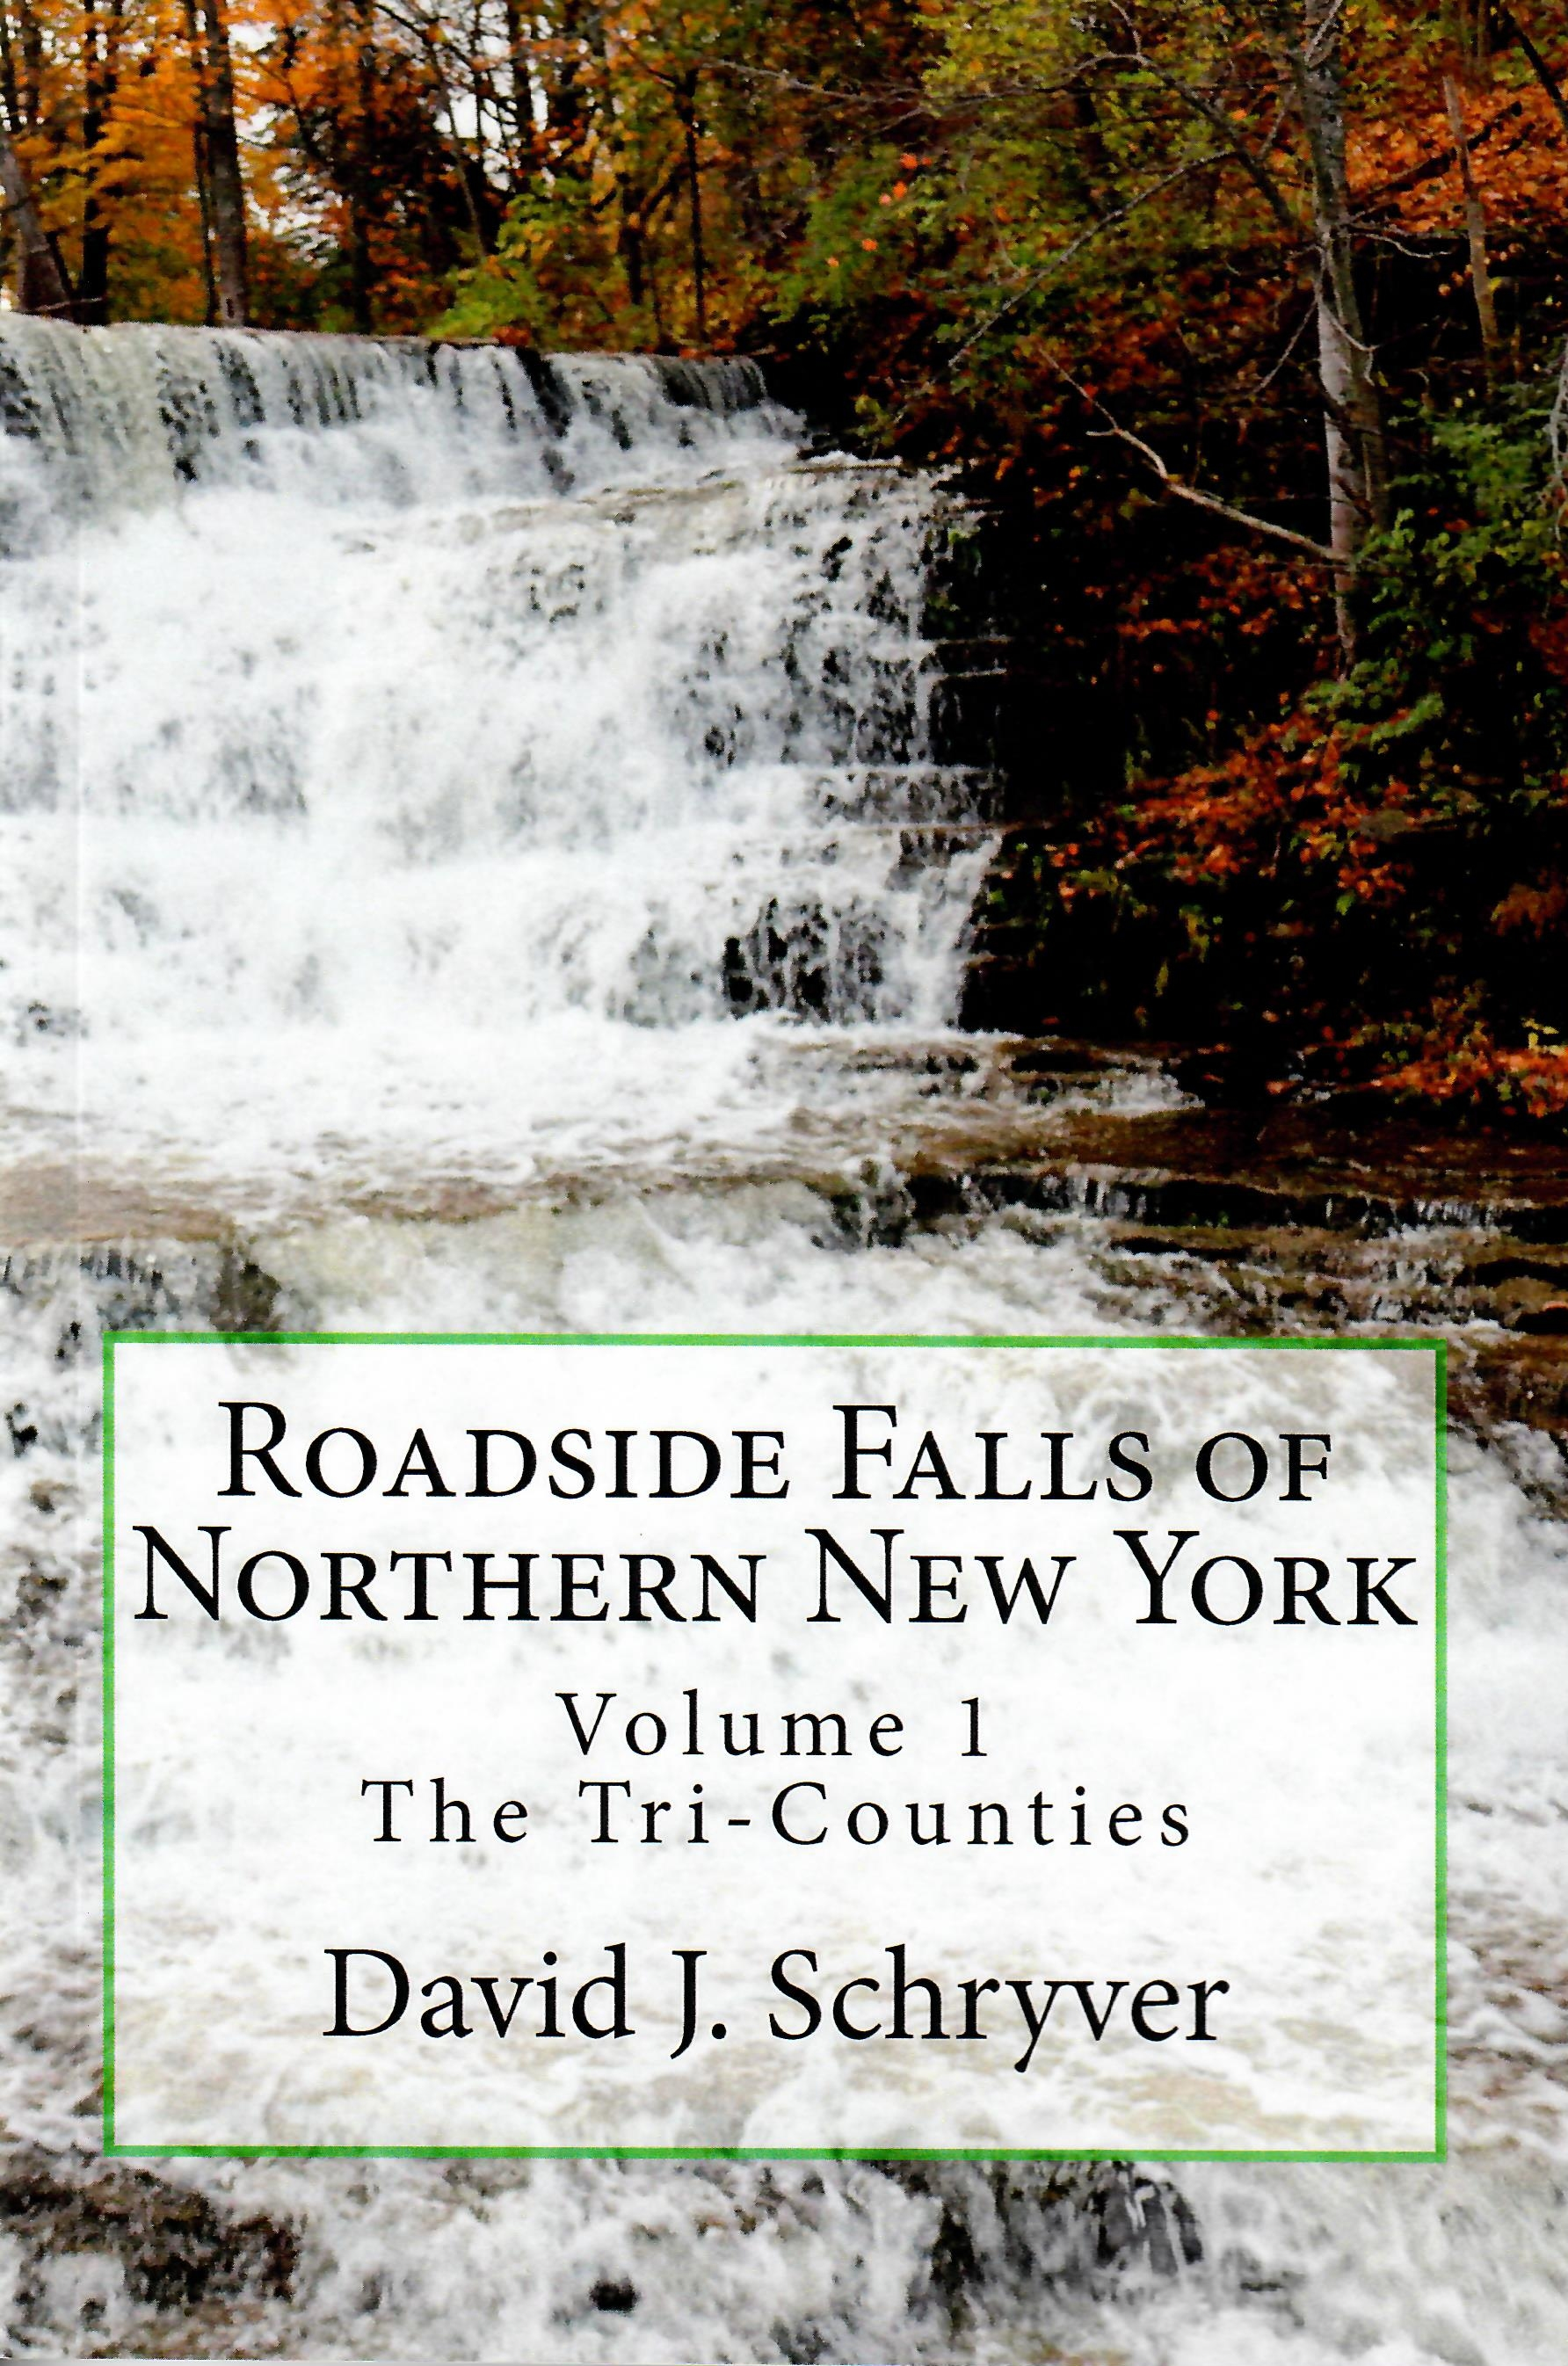 Roadside Falls of Northern New York Volume 1, The Tri-Counties